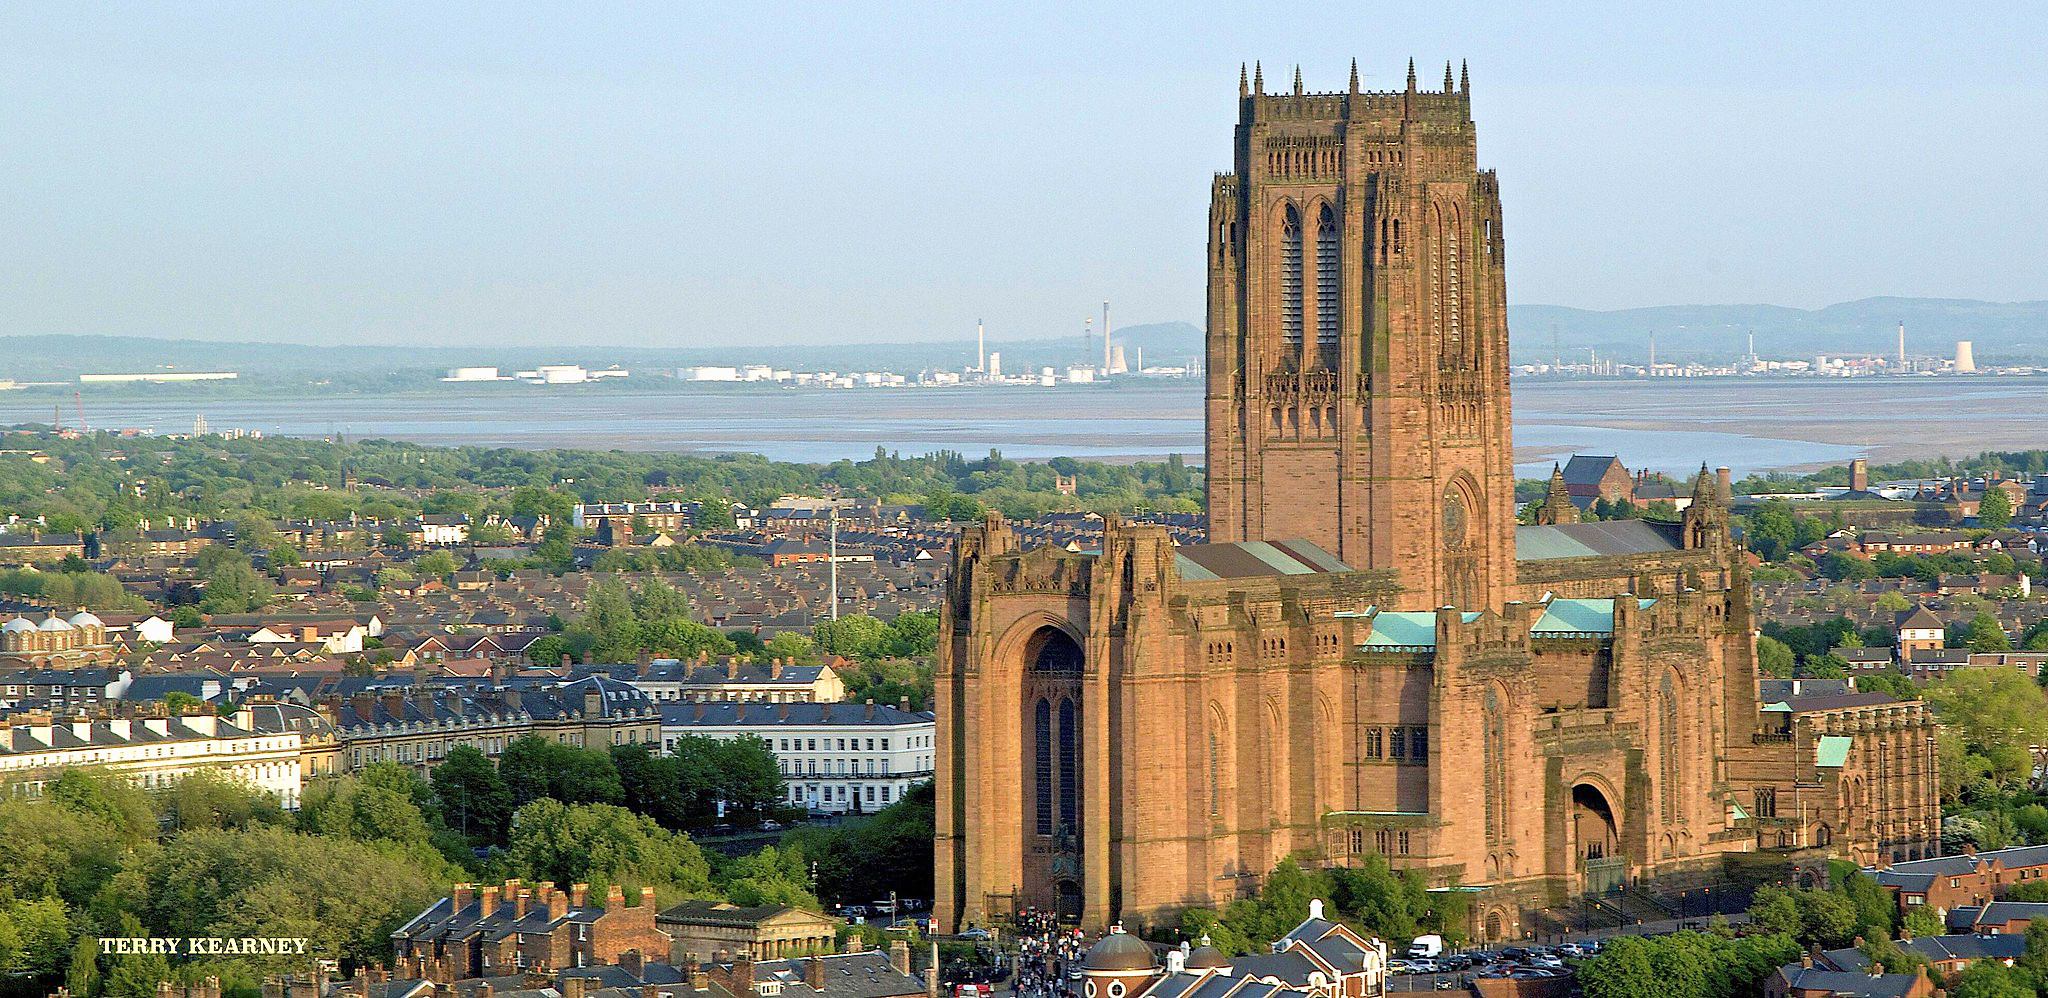 Liverpool Anglican Cathedral from St. John's Beacon by Terry Kearney.jpg